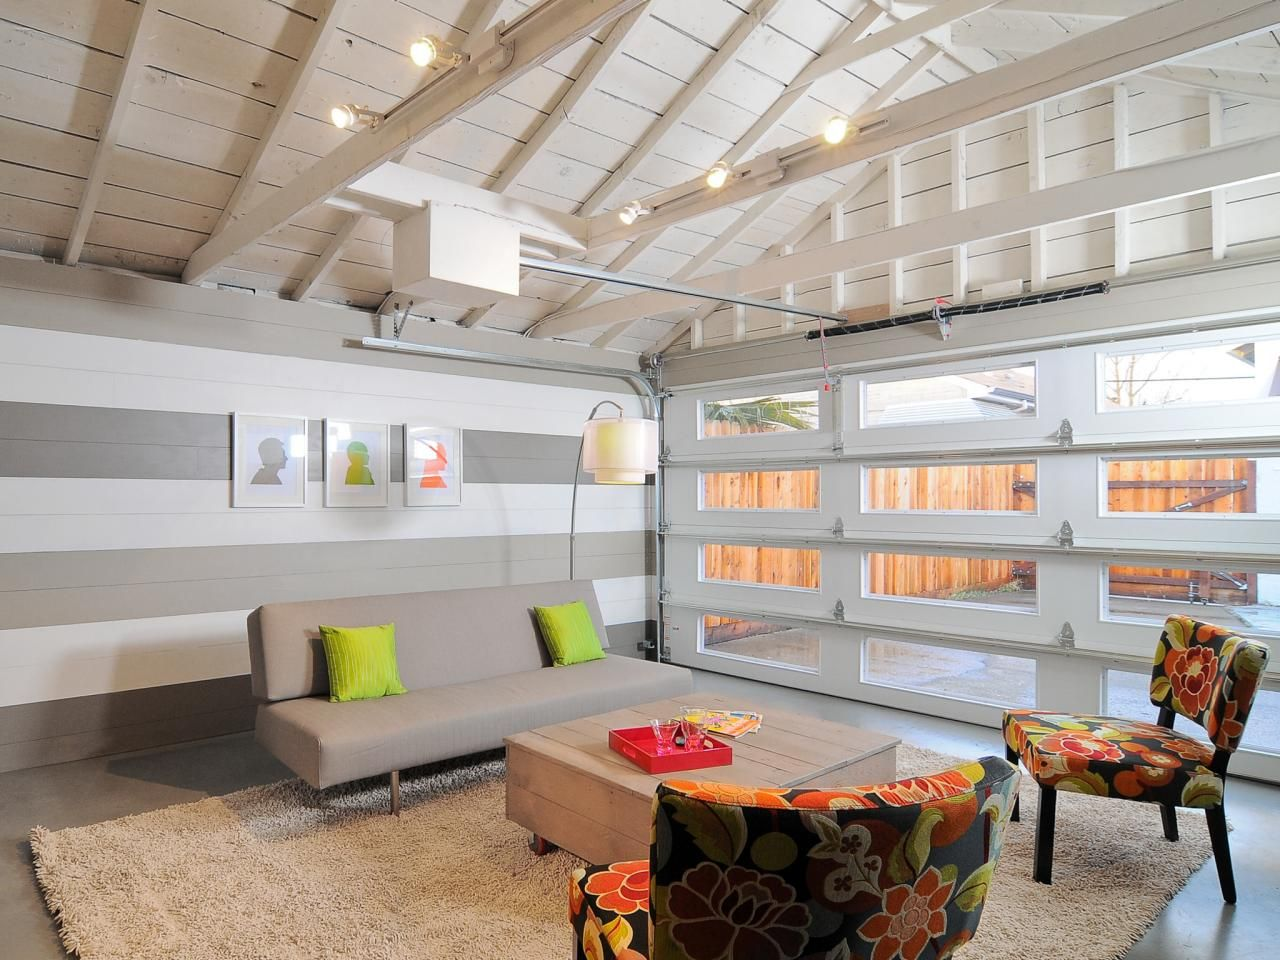 15 Home Garages Transformed Into Beautiful Living Spaces | Pinterest ...